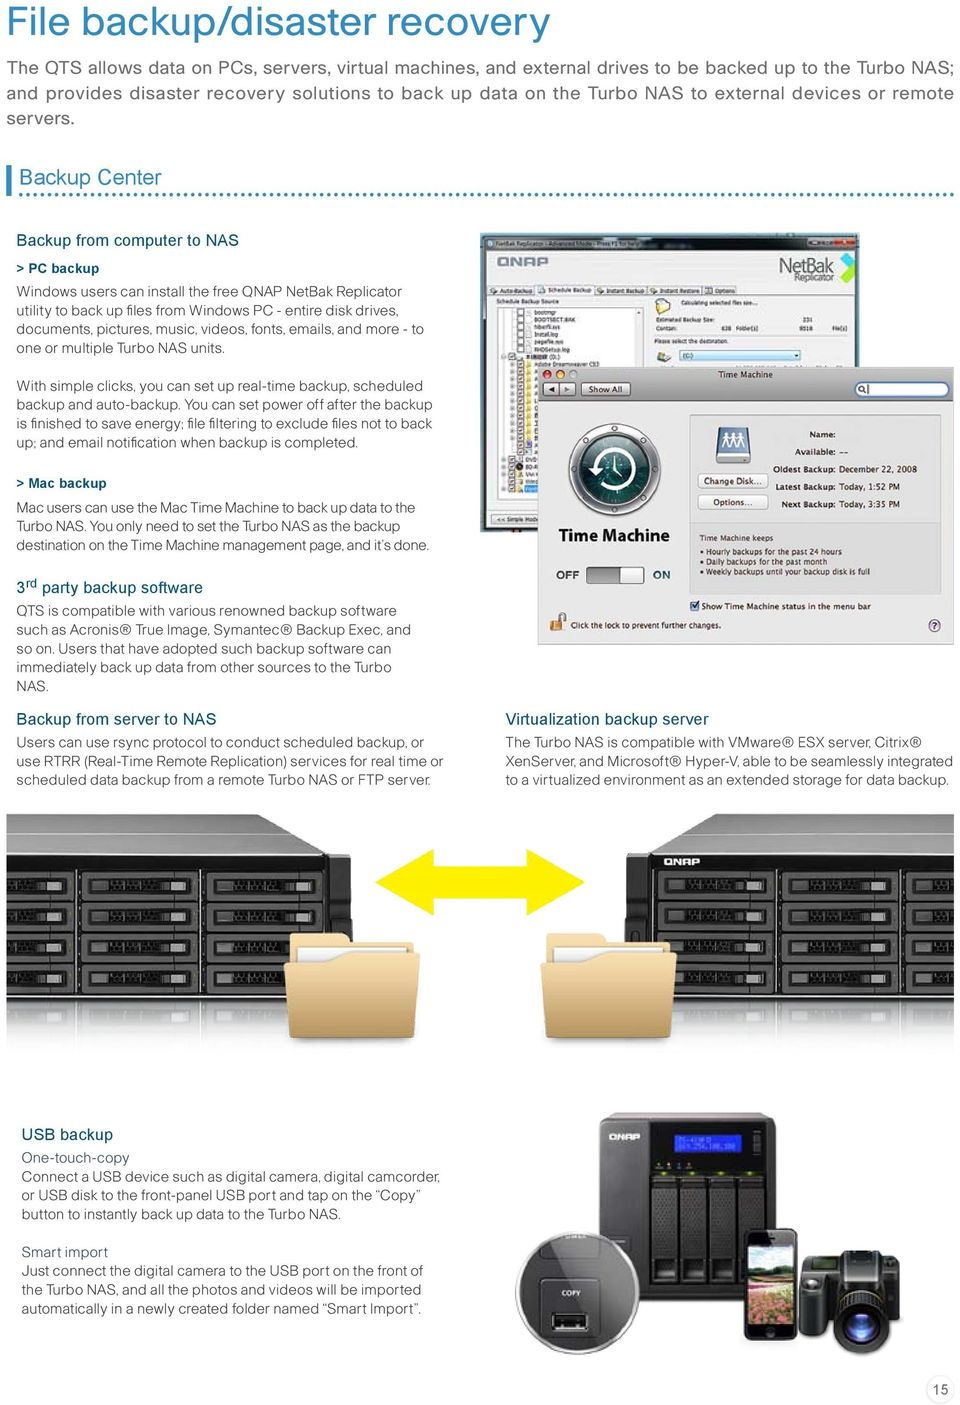 Backup Center Backup from computer to NAS > PC backup Windows users can install the free QNAP NetBak Replicator utility to back up files from Windows PC - entire disk drives, documents, pictures,